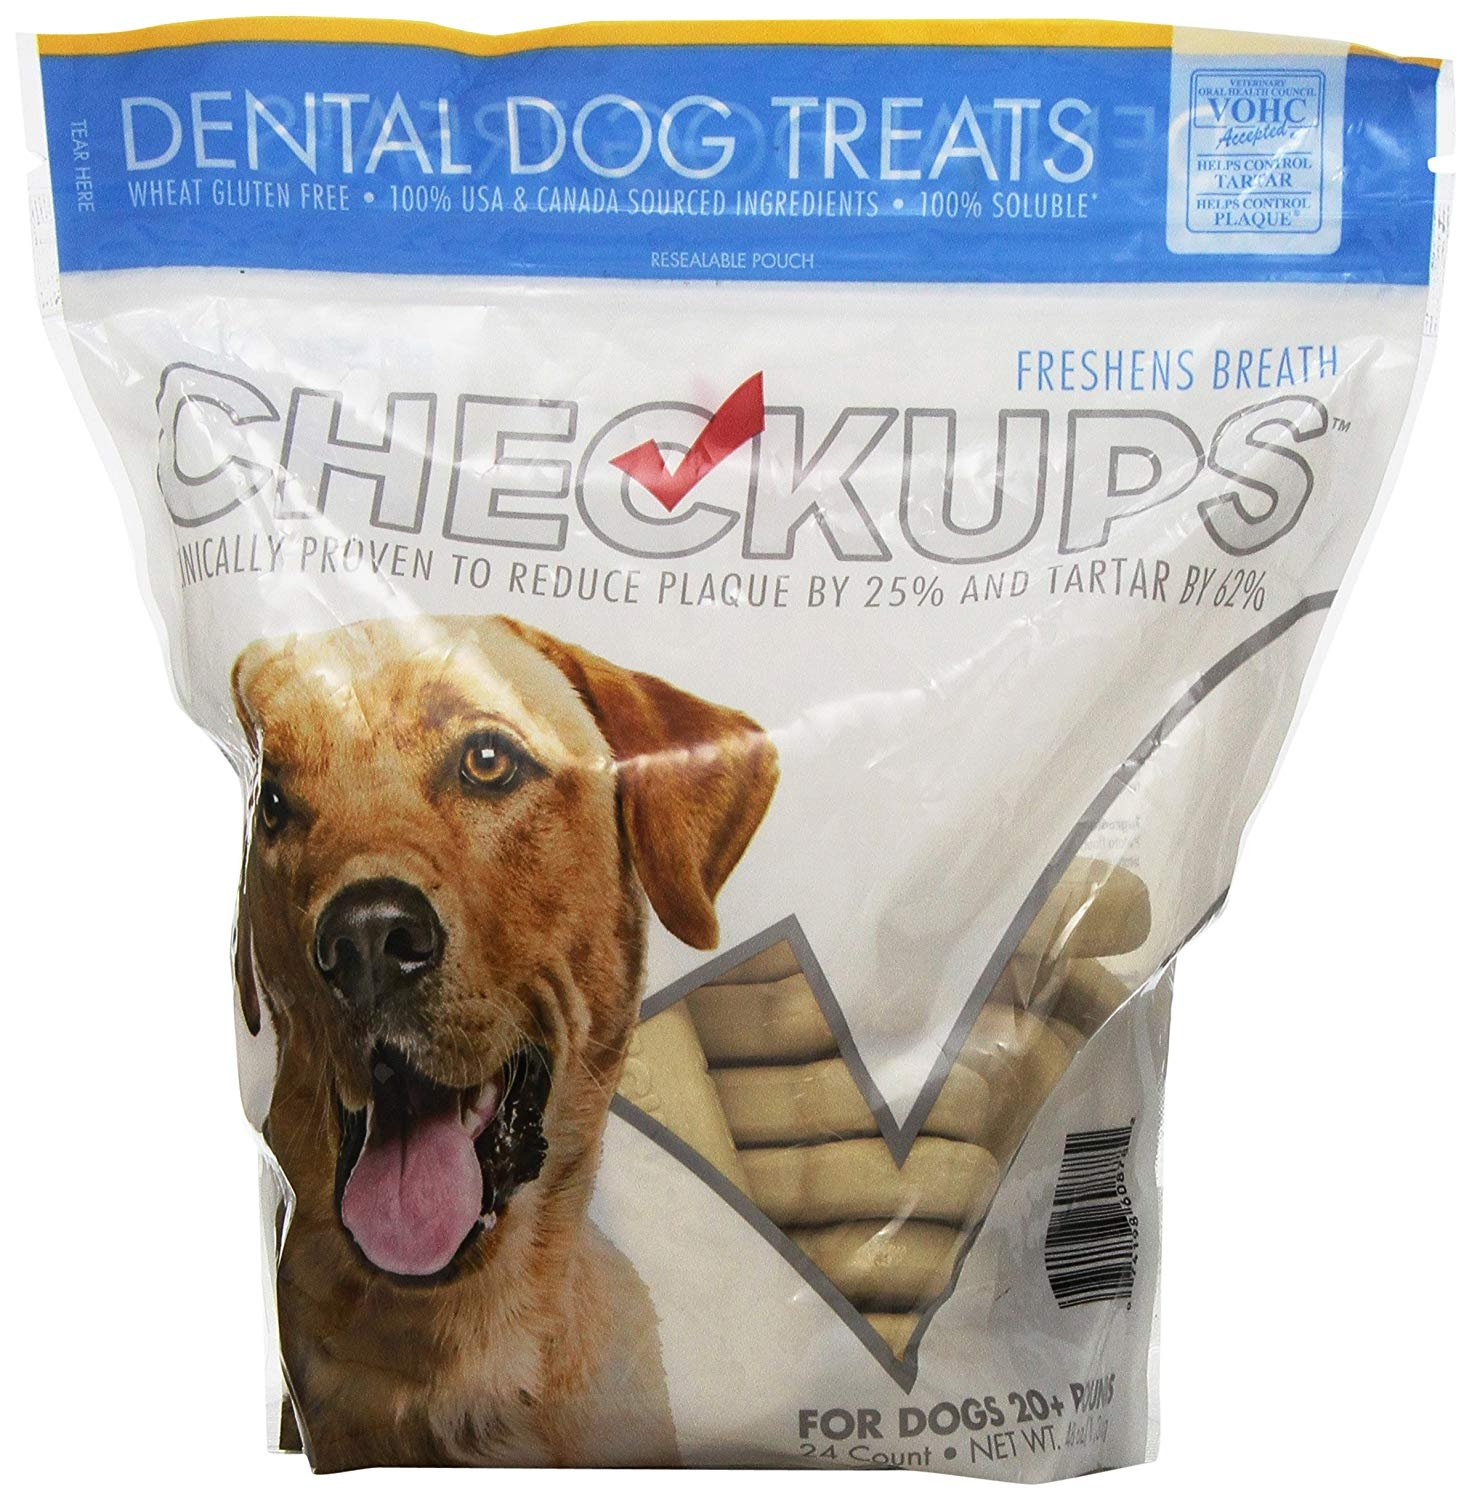 Checkups- Dental Dog Treats, 24ct 48 oz. for Dogs 20 pounds